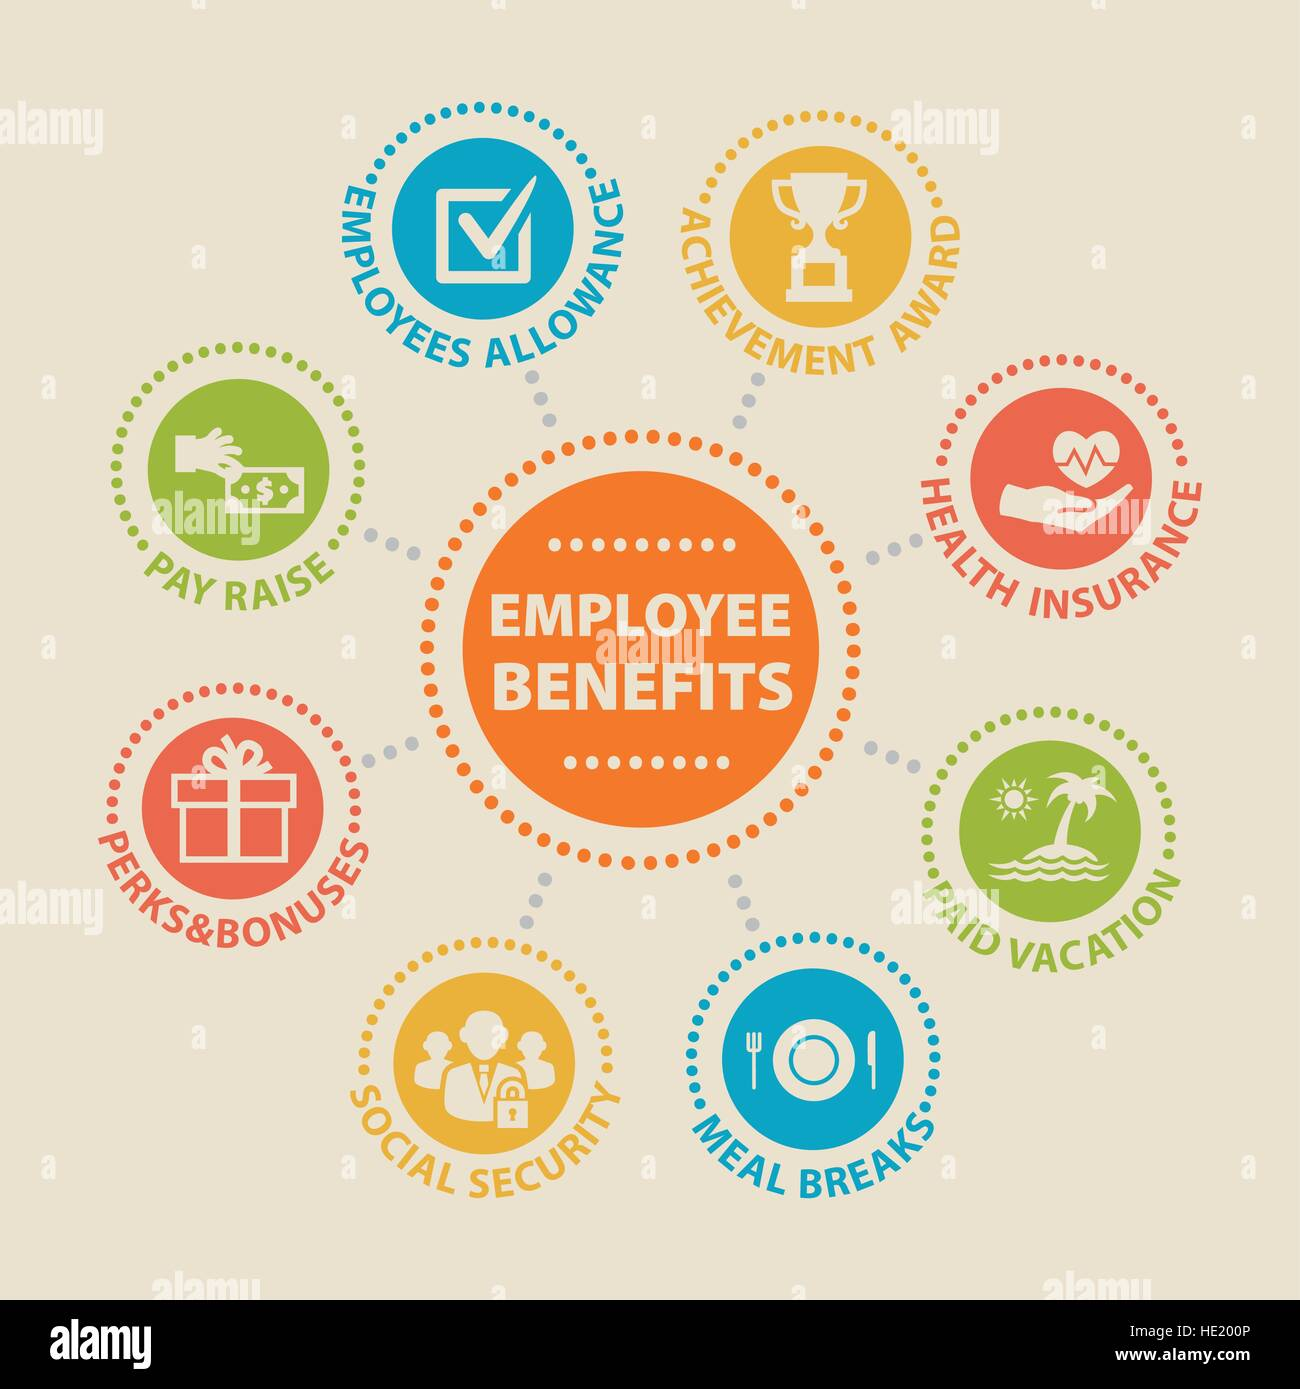 EMPLOYEE BENEFITS Concept with icons and signs - Stock Image